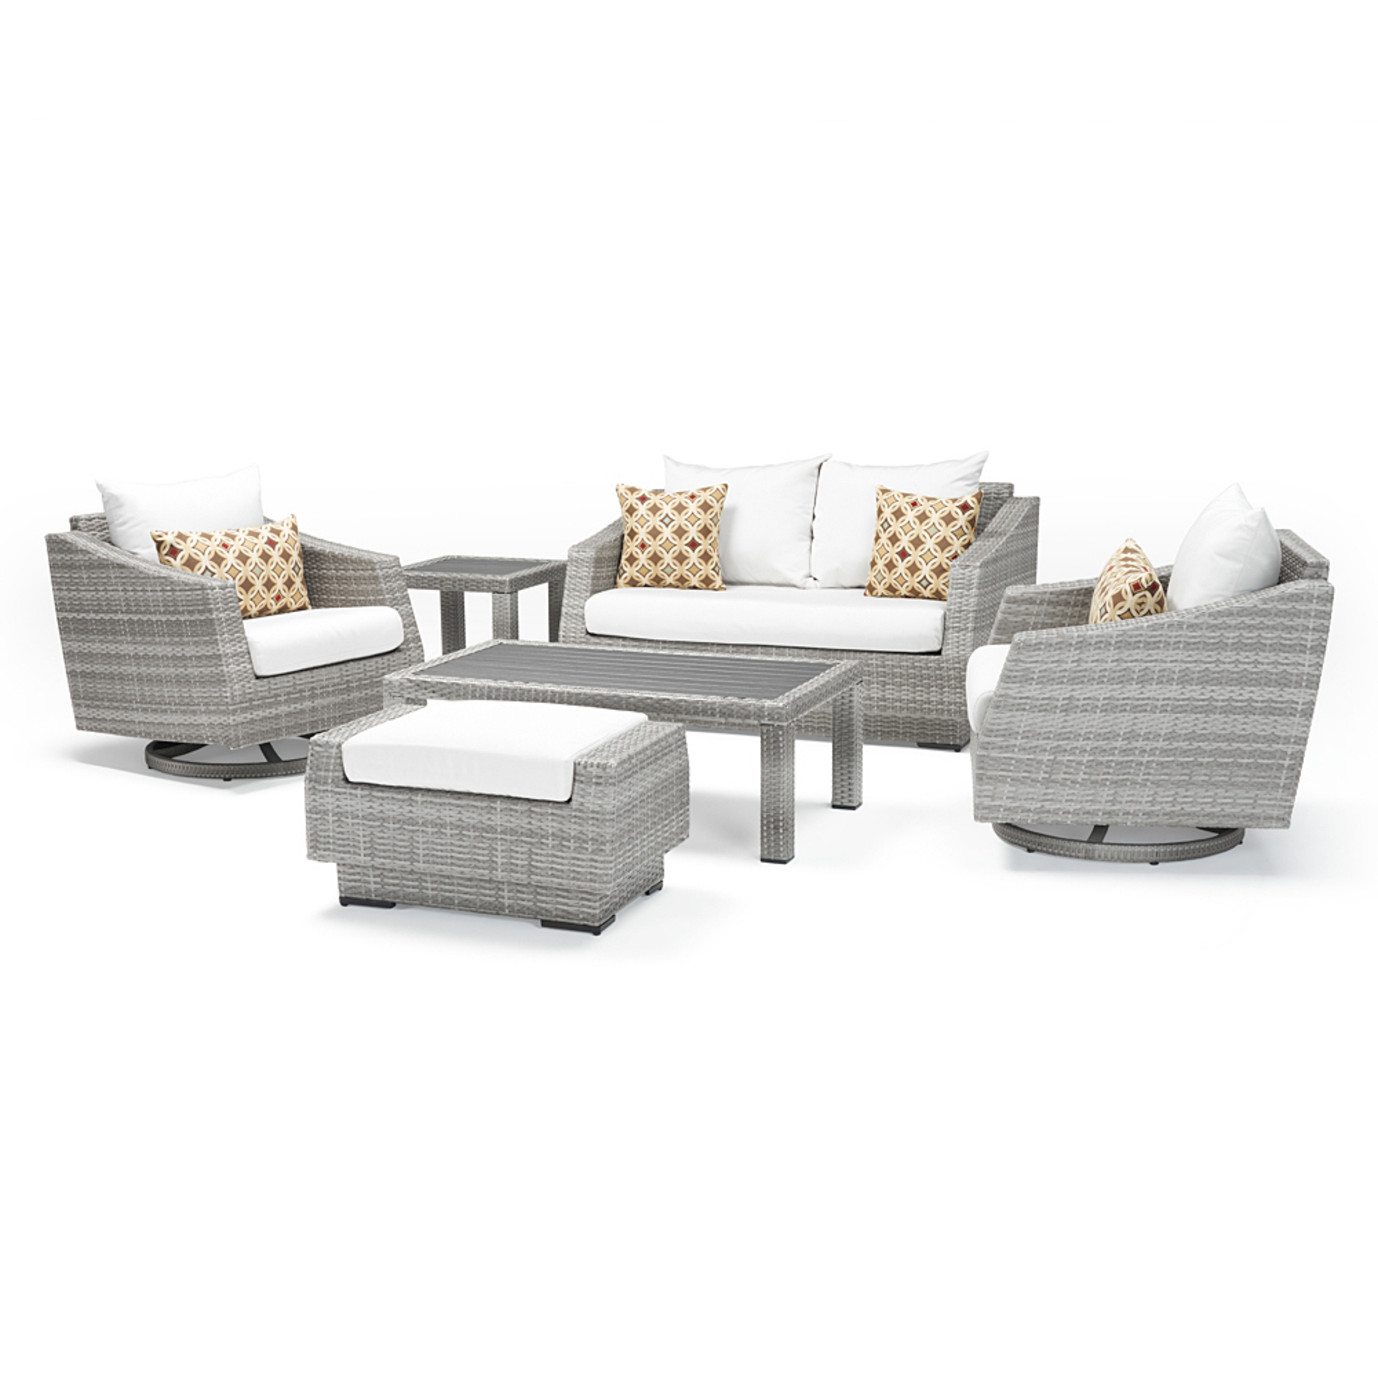 Cannes Deluxe 6 Piece Love & Motion Club Seating Set - Moroccan Cream